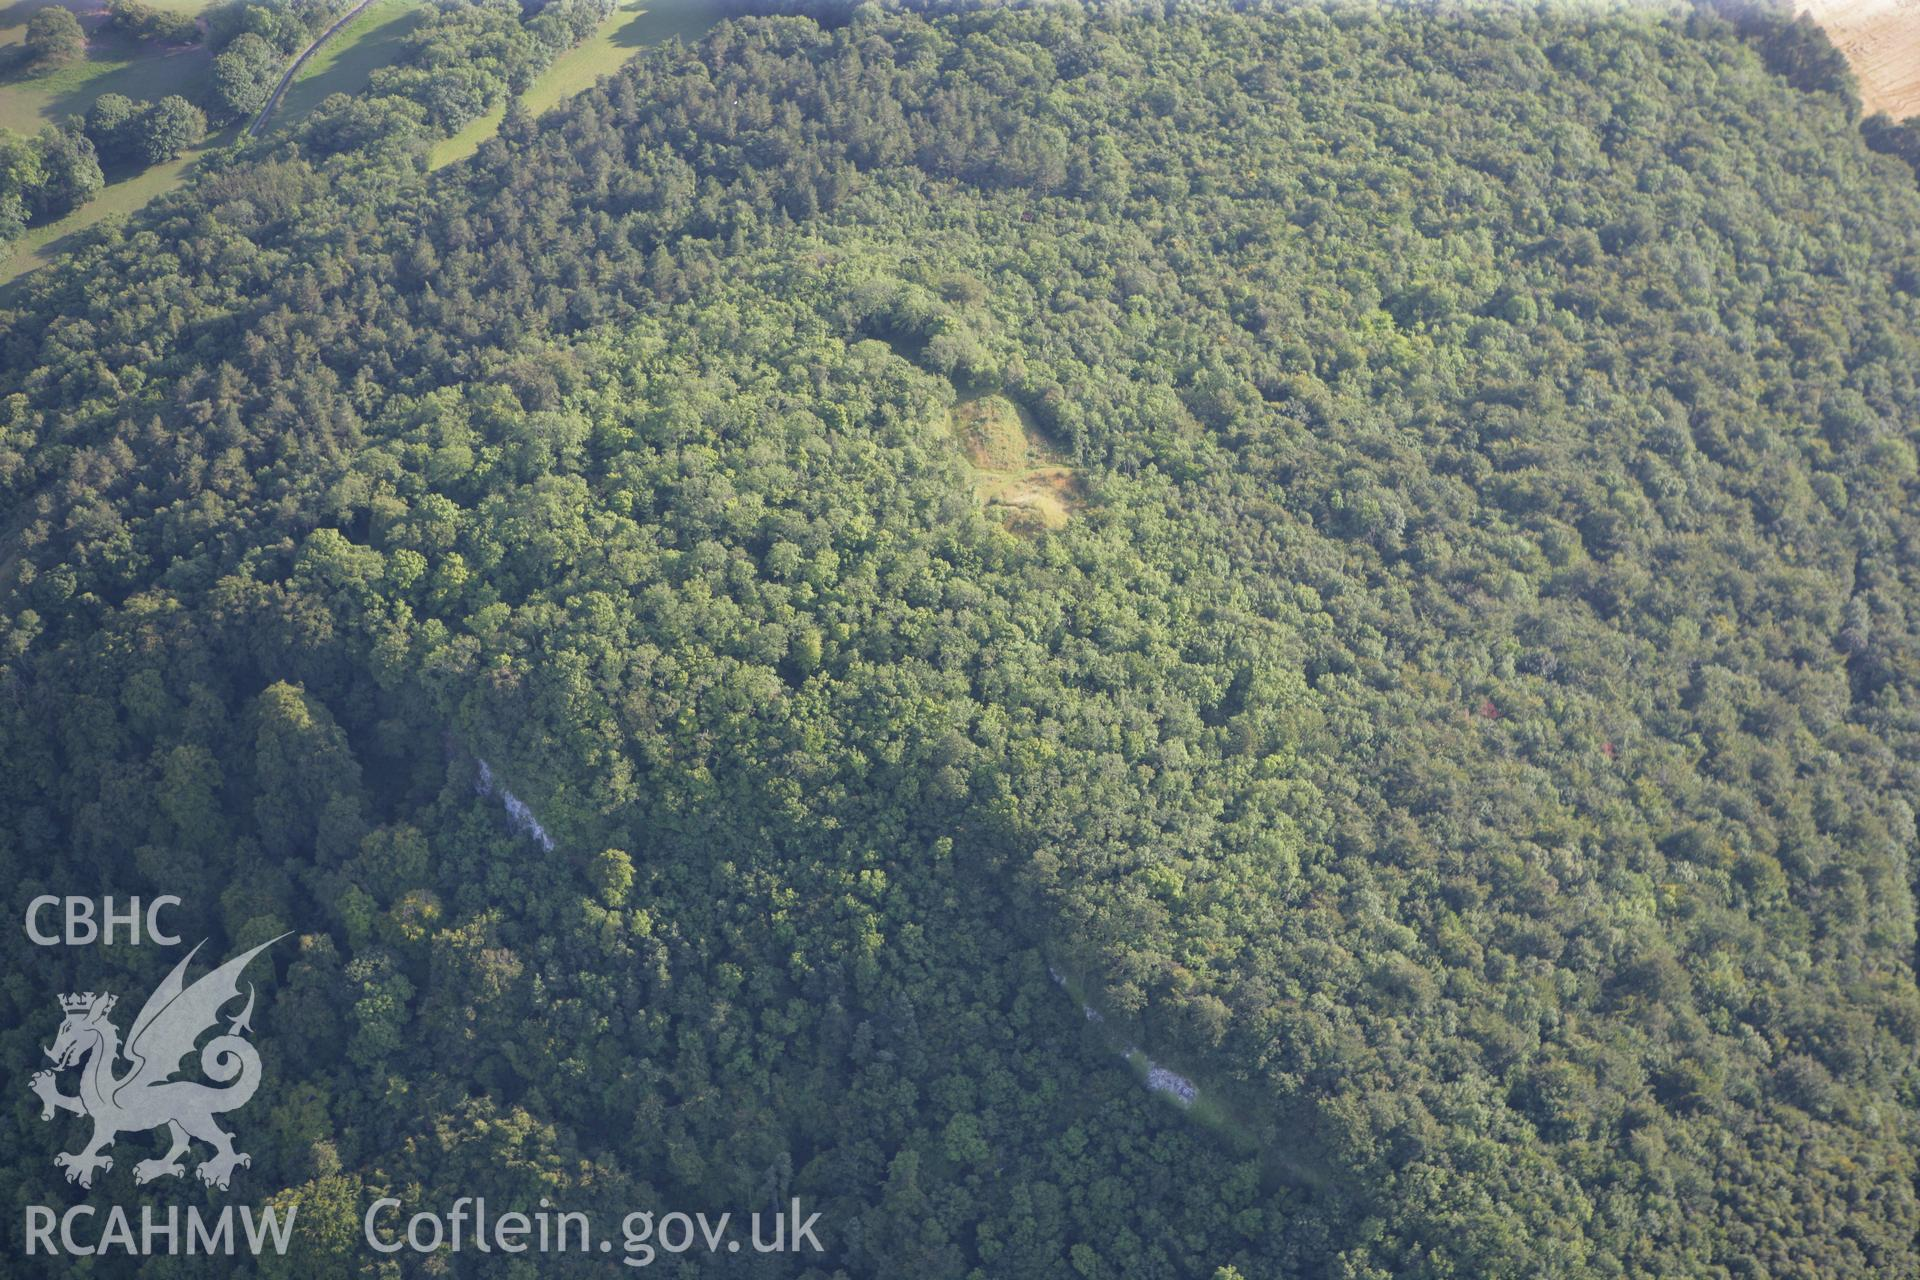 RCAHMW colour oblique photograph of Castell Cawr. Taken by Toby Driver and Oliver Davies on 27/07/2011.